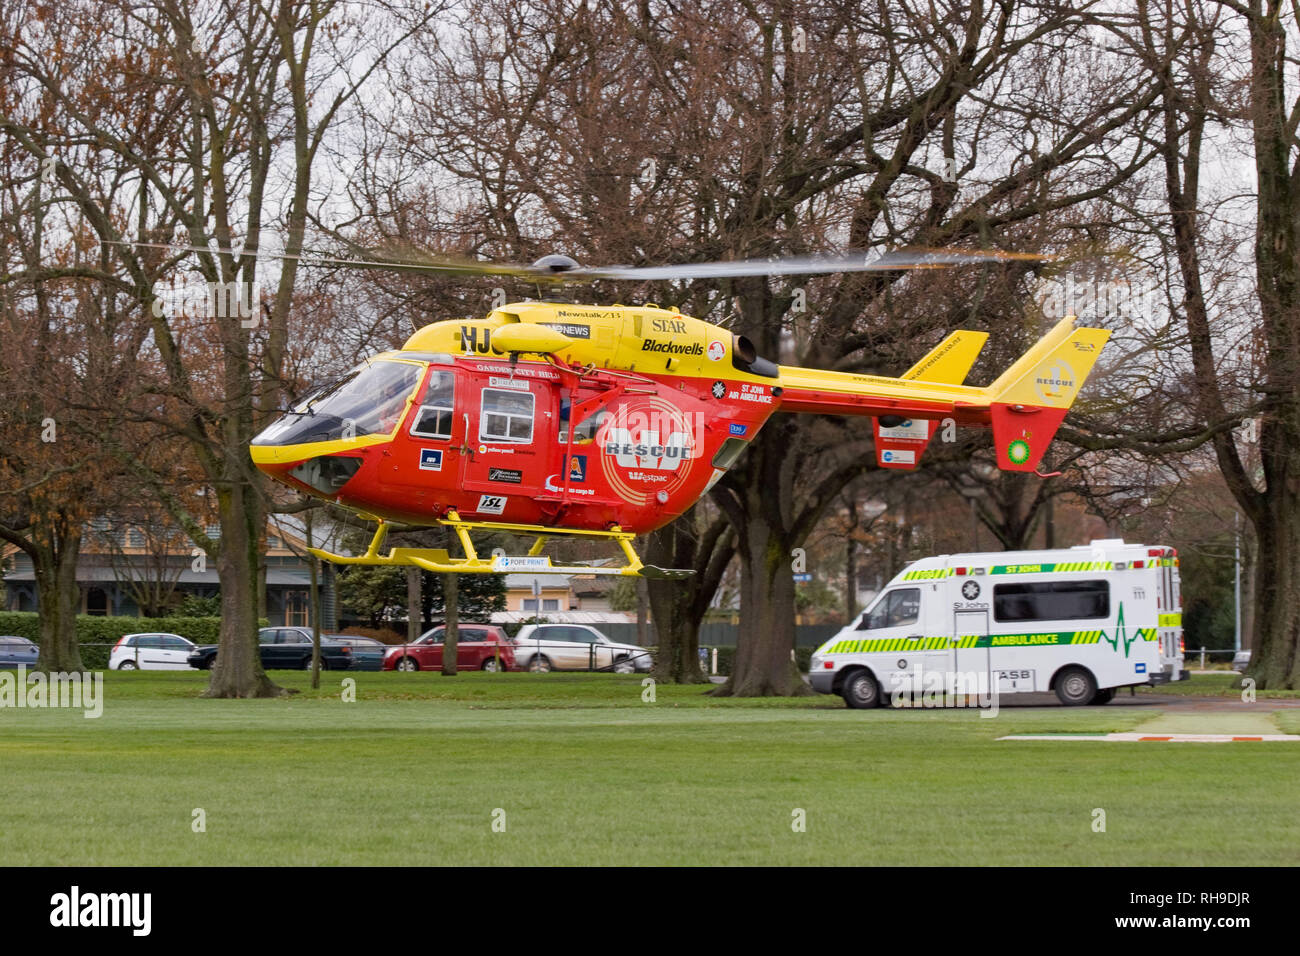 An MBB/Kawasaki BK 117 rescue helicopter meets a St John's ambulance in a local park to transfer a patient to Christchurch Hospital, New Zealand Stock Photo